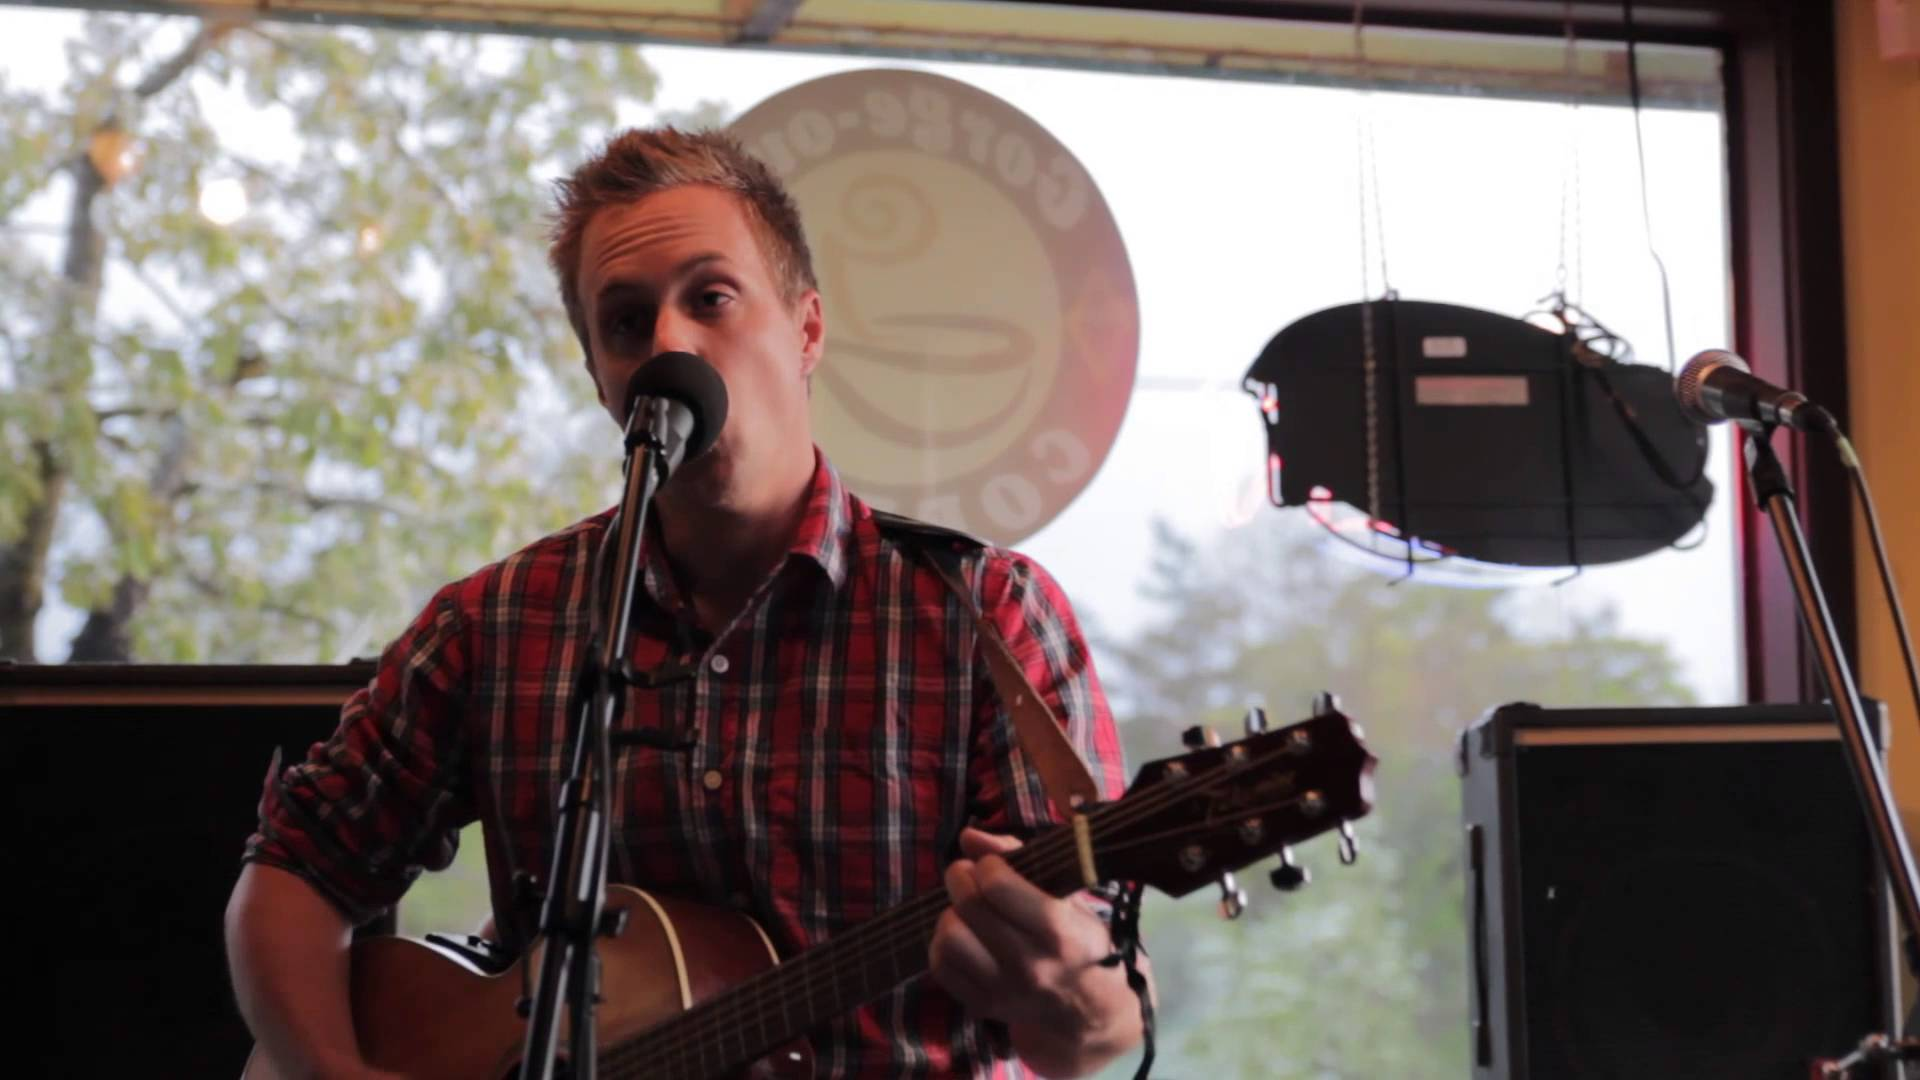 Video Archive- 2013-04-27: Riley Smith at Gorge-ous Coffee